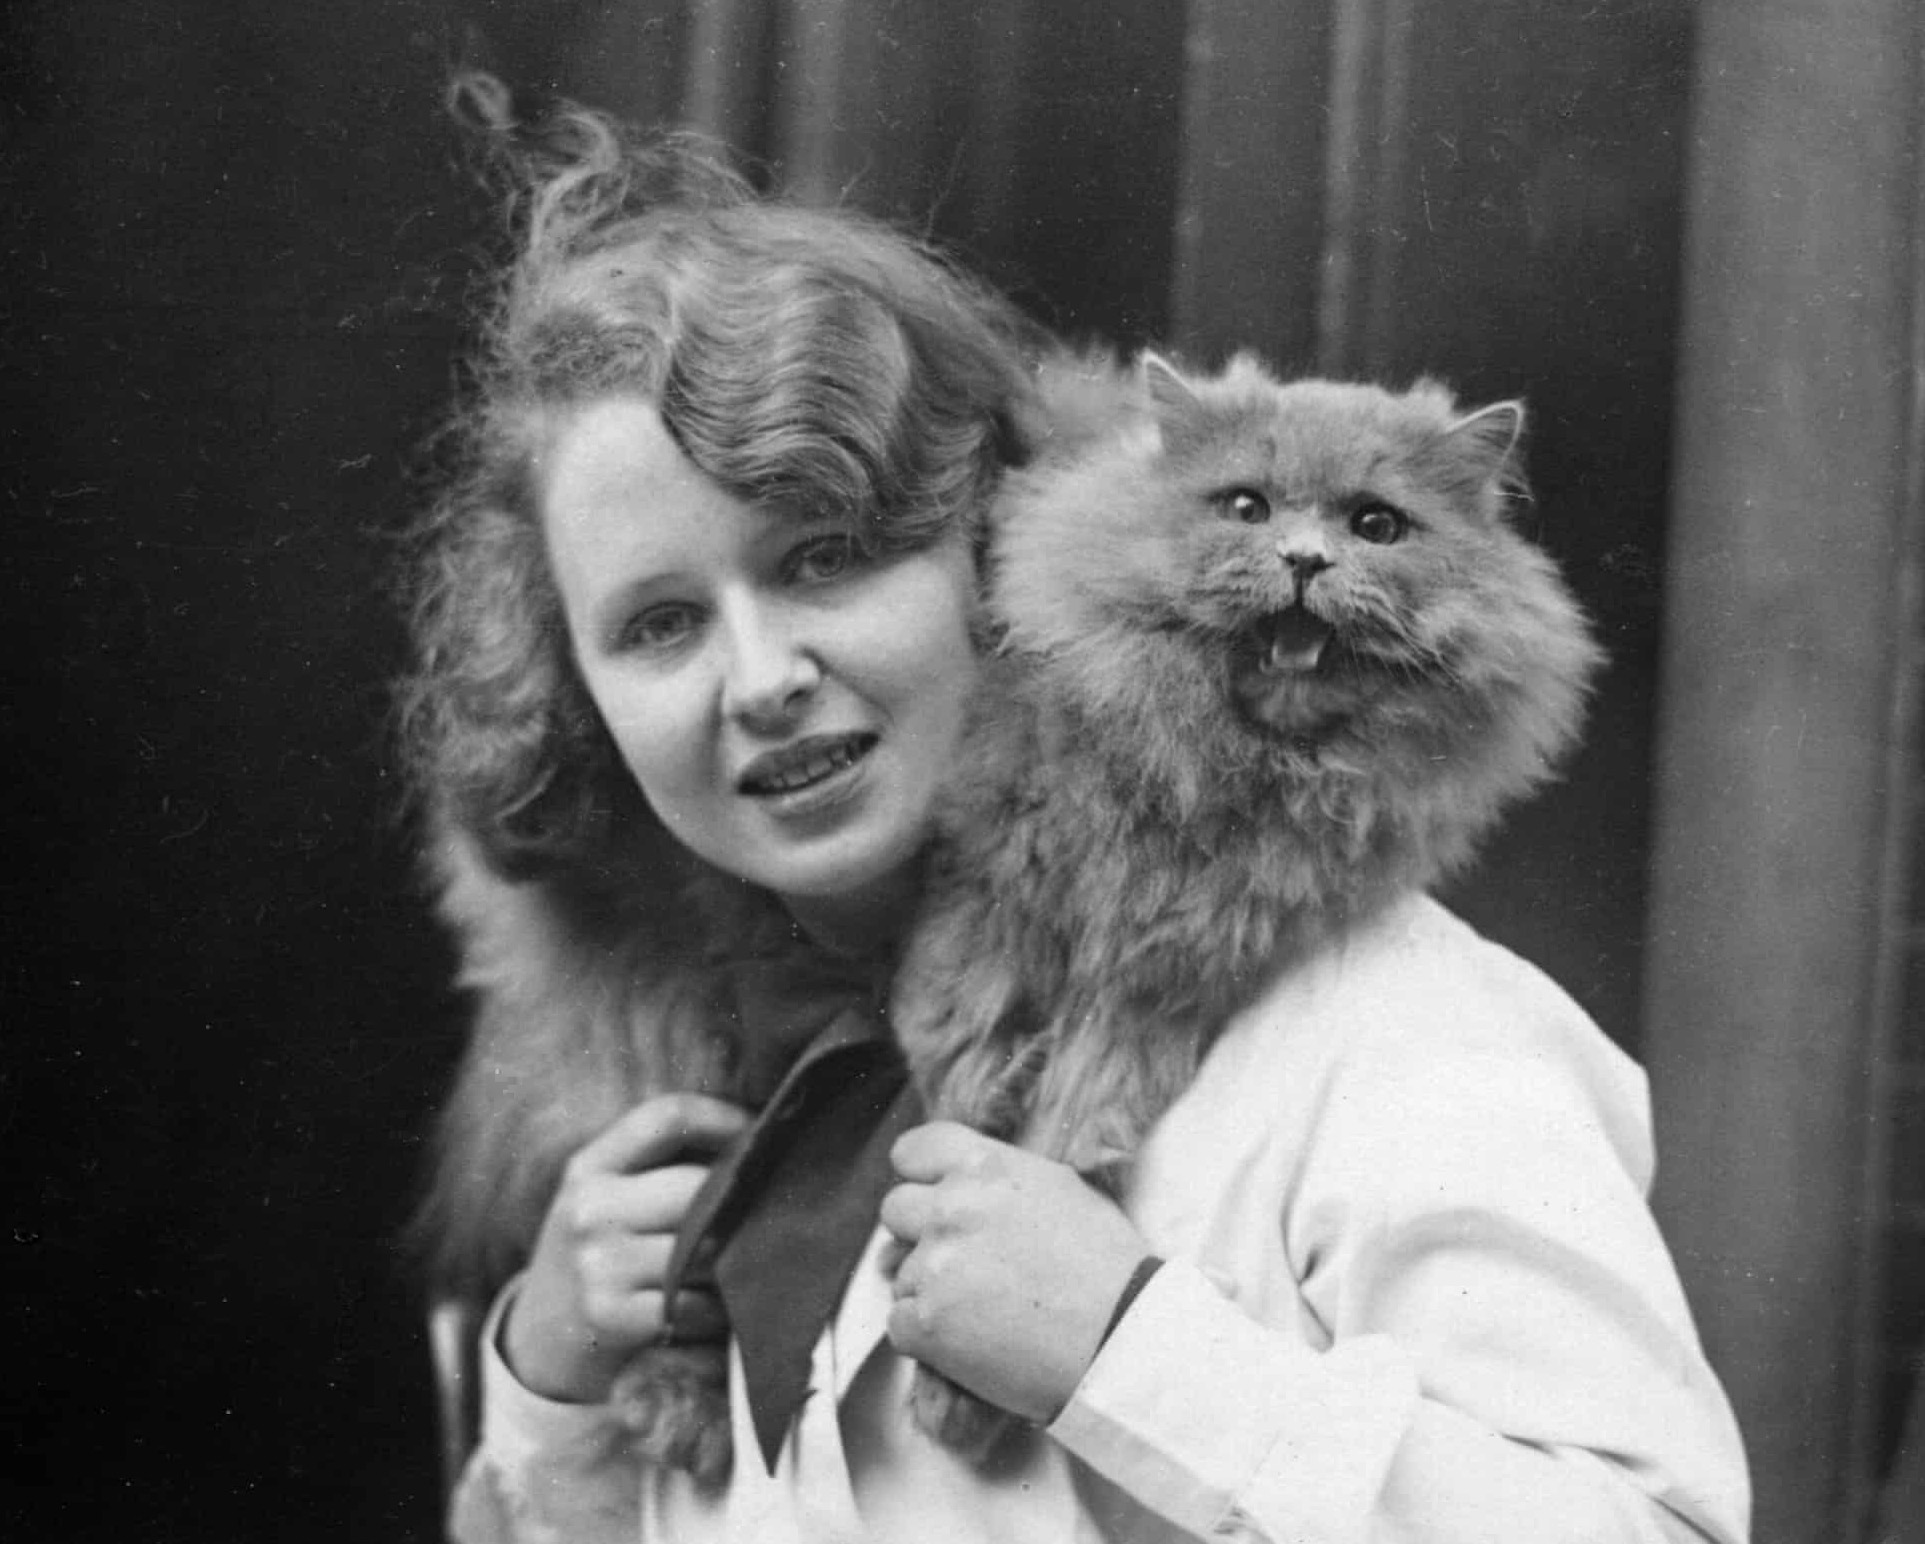 Patrick of Allington, a blue Persian wins first prize at a cat show at Holy Trinity Hall in central London in 1933